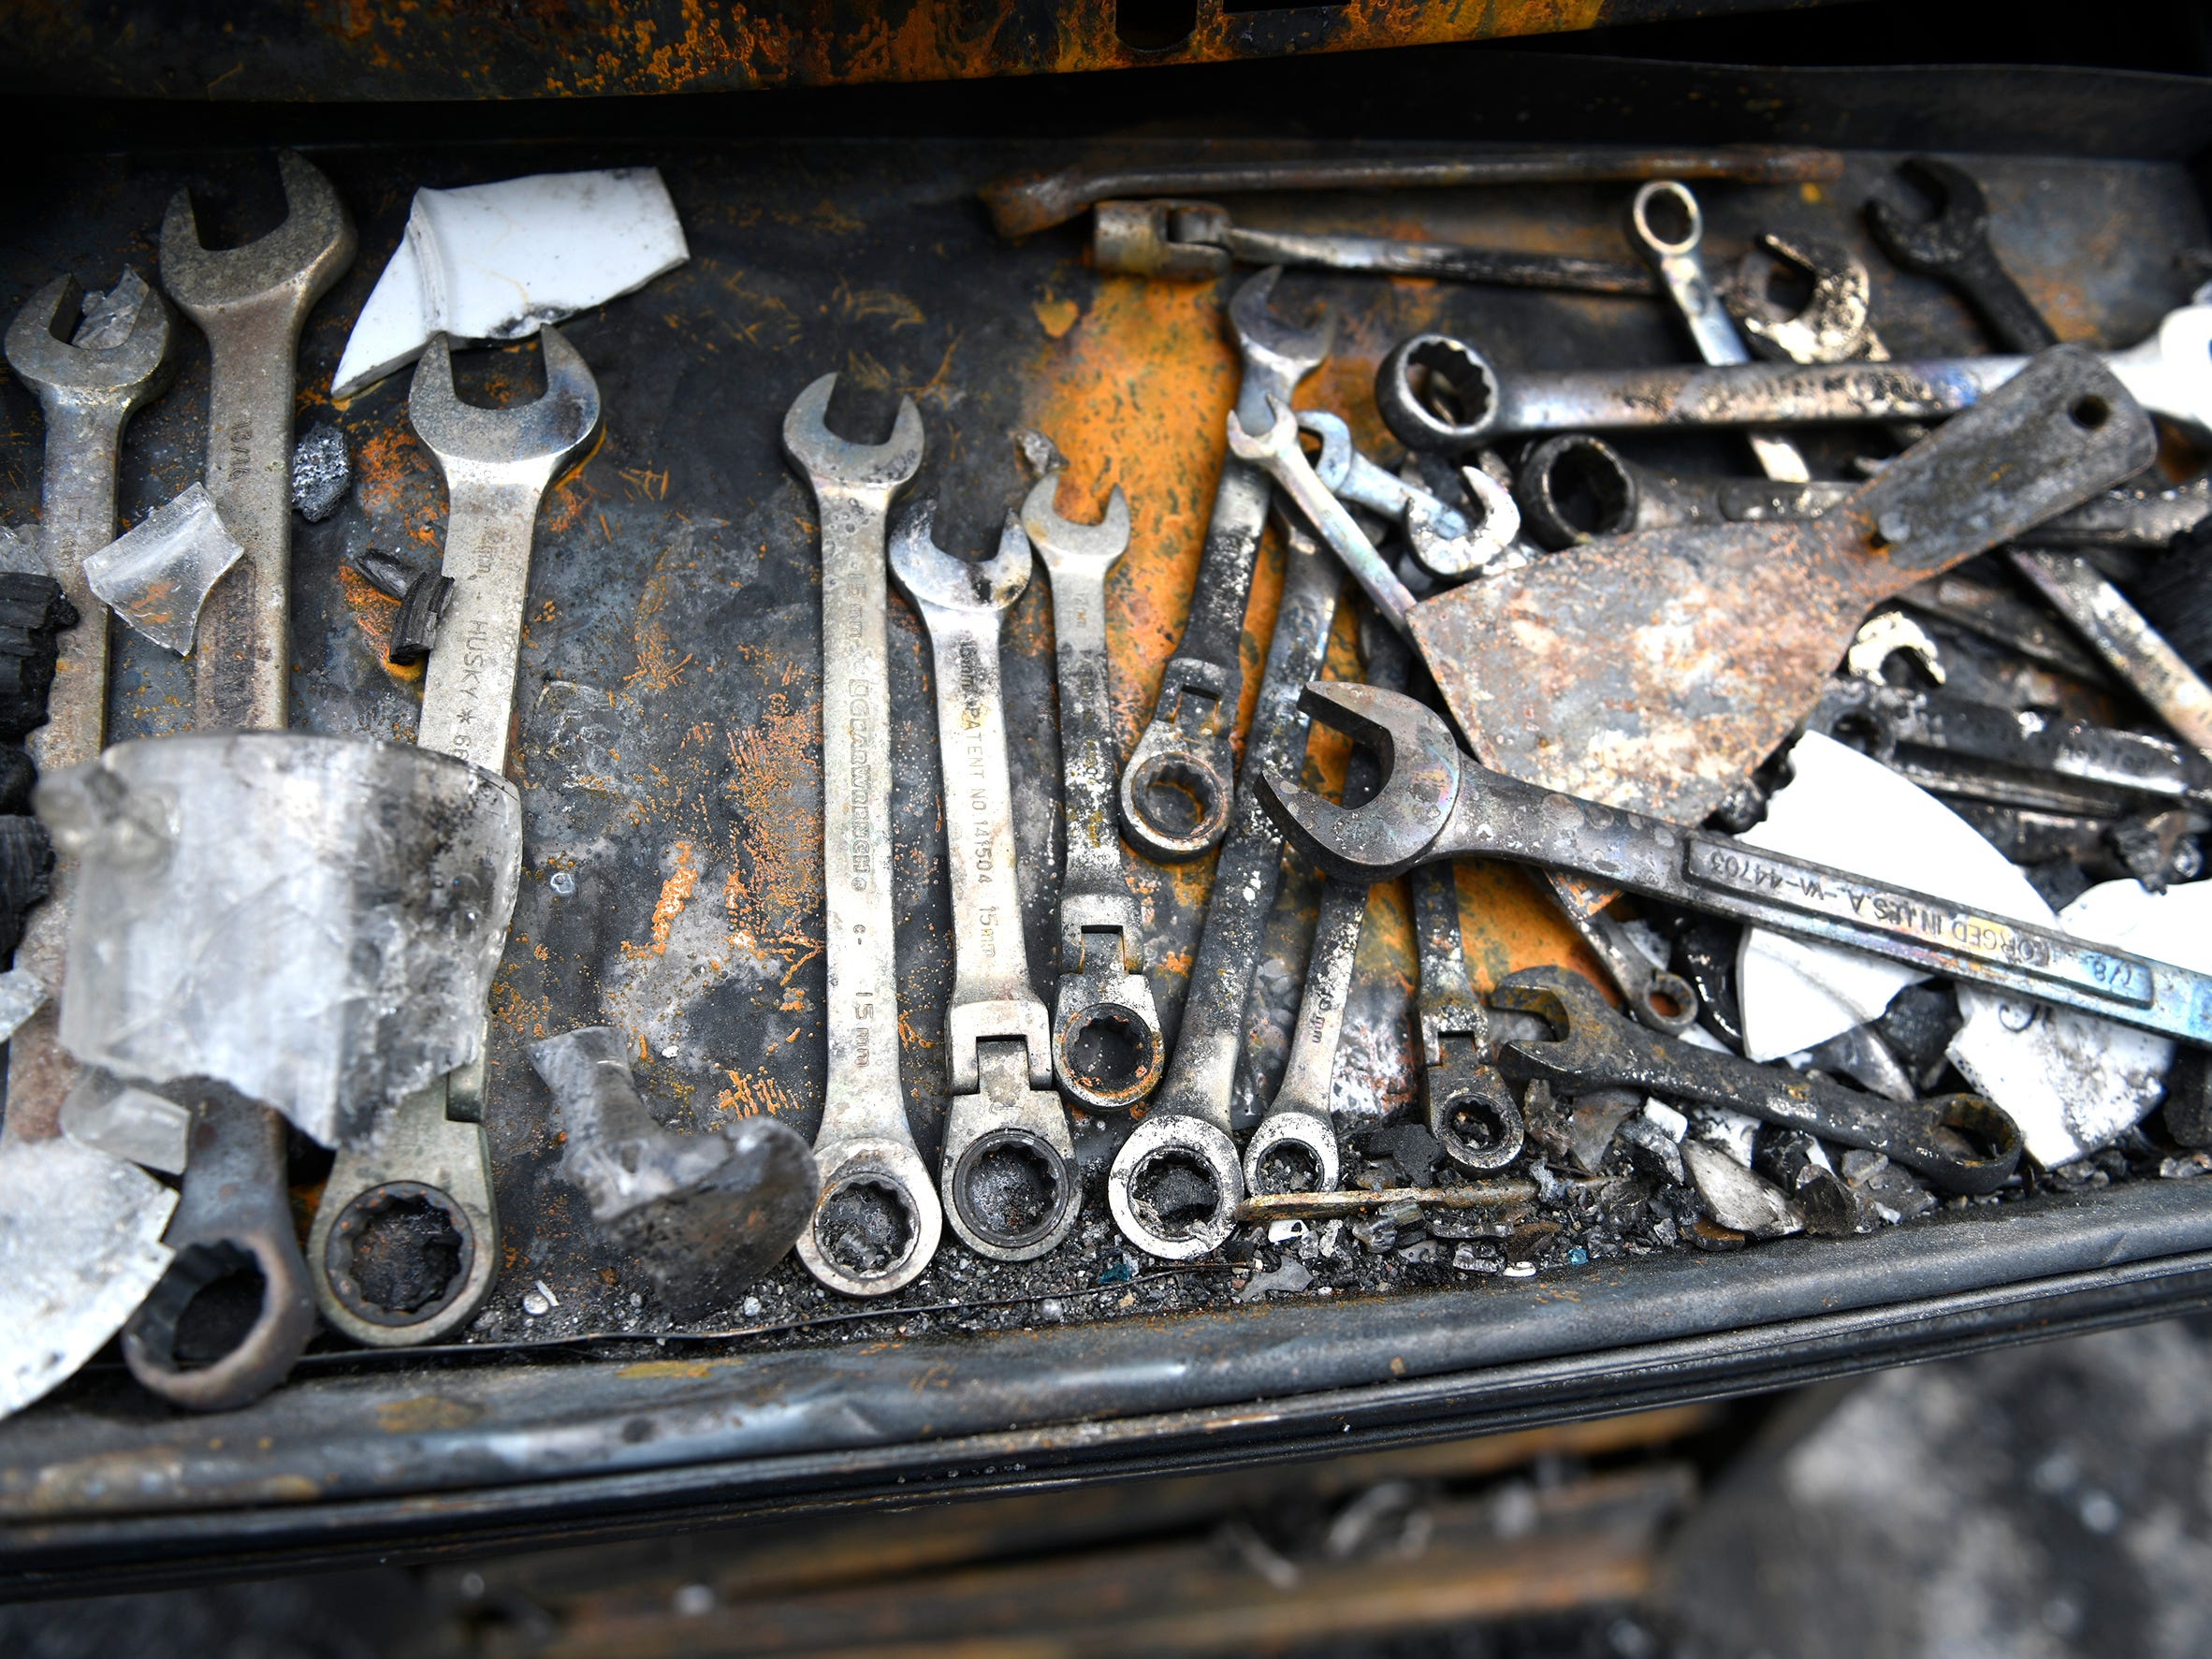 Charred tools inside the garage are seen here following Monday's house fire in Vineland.